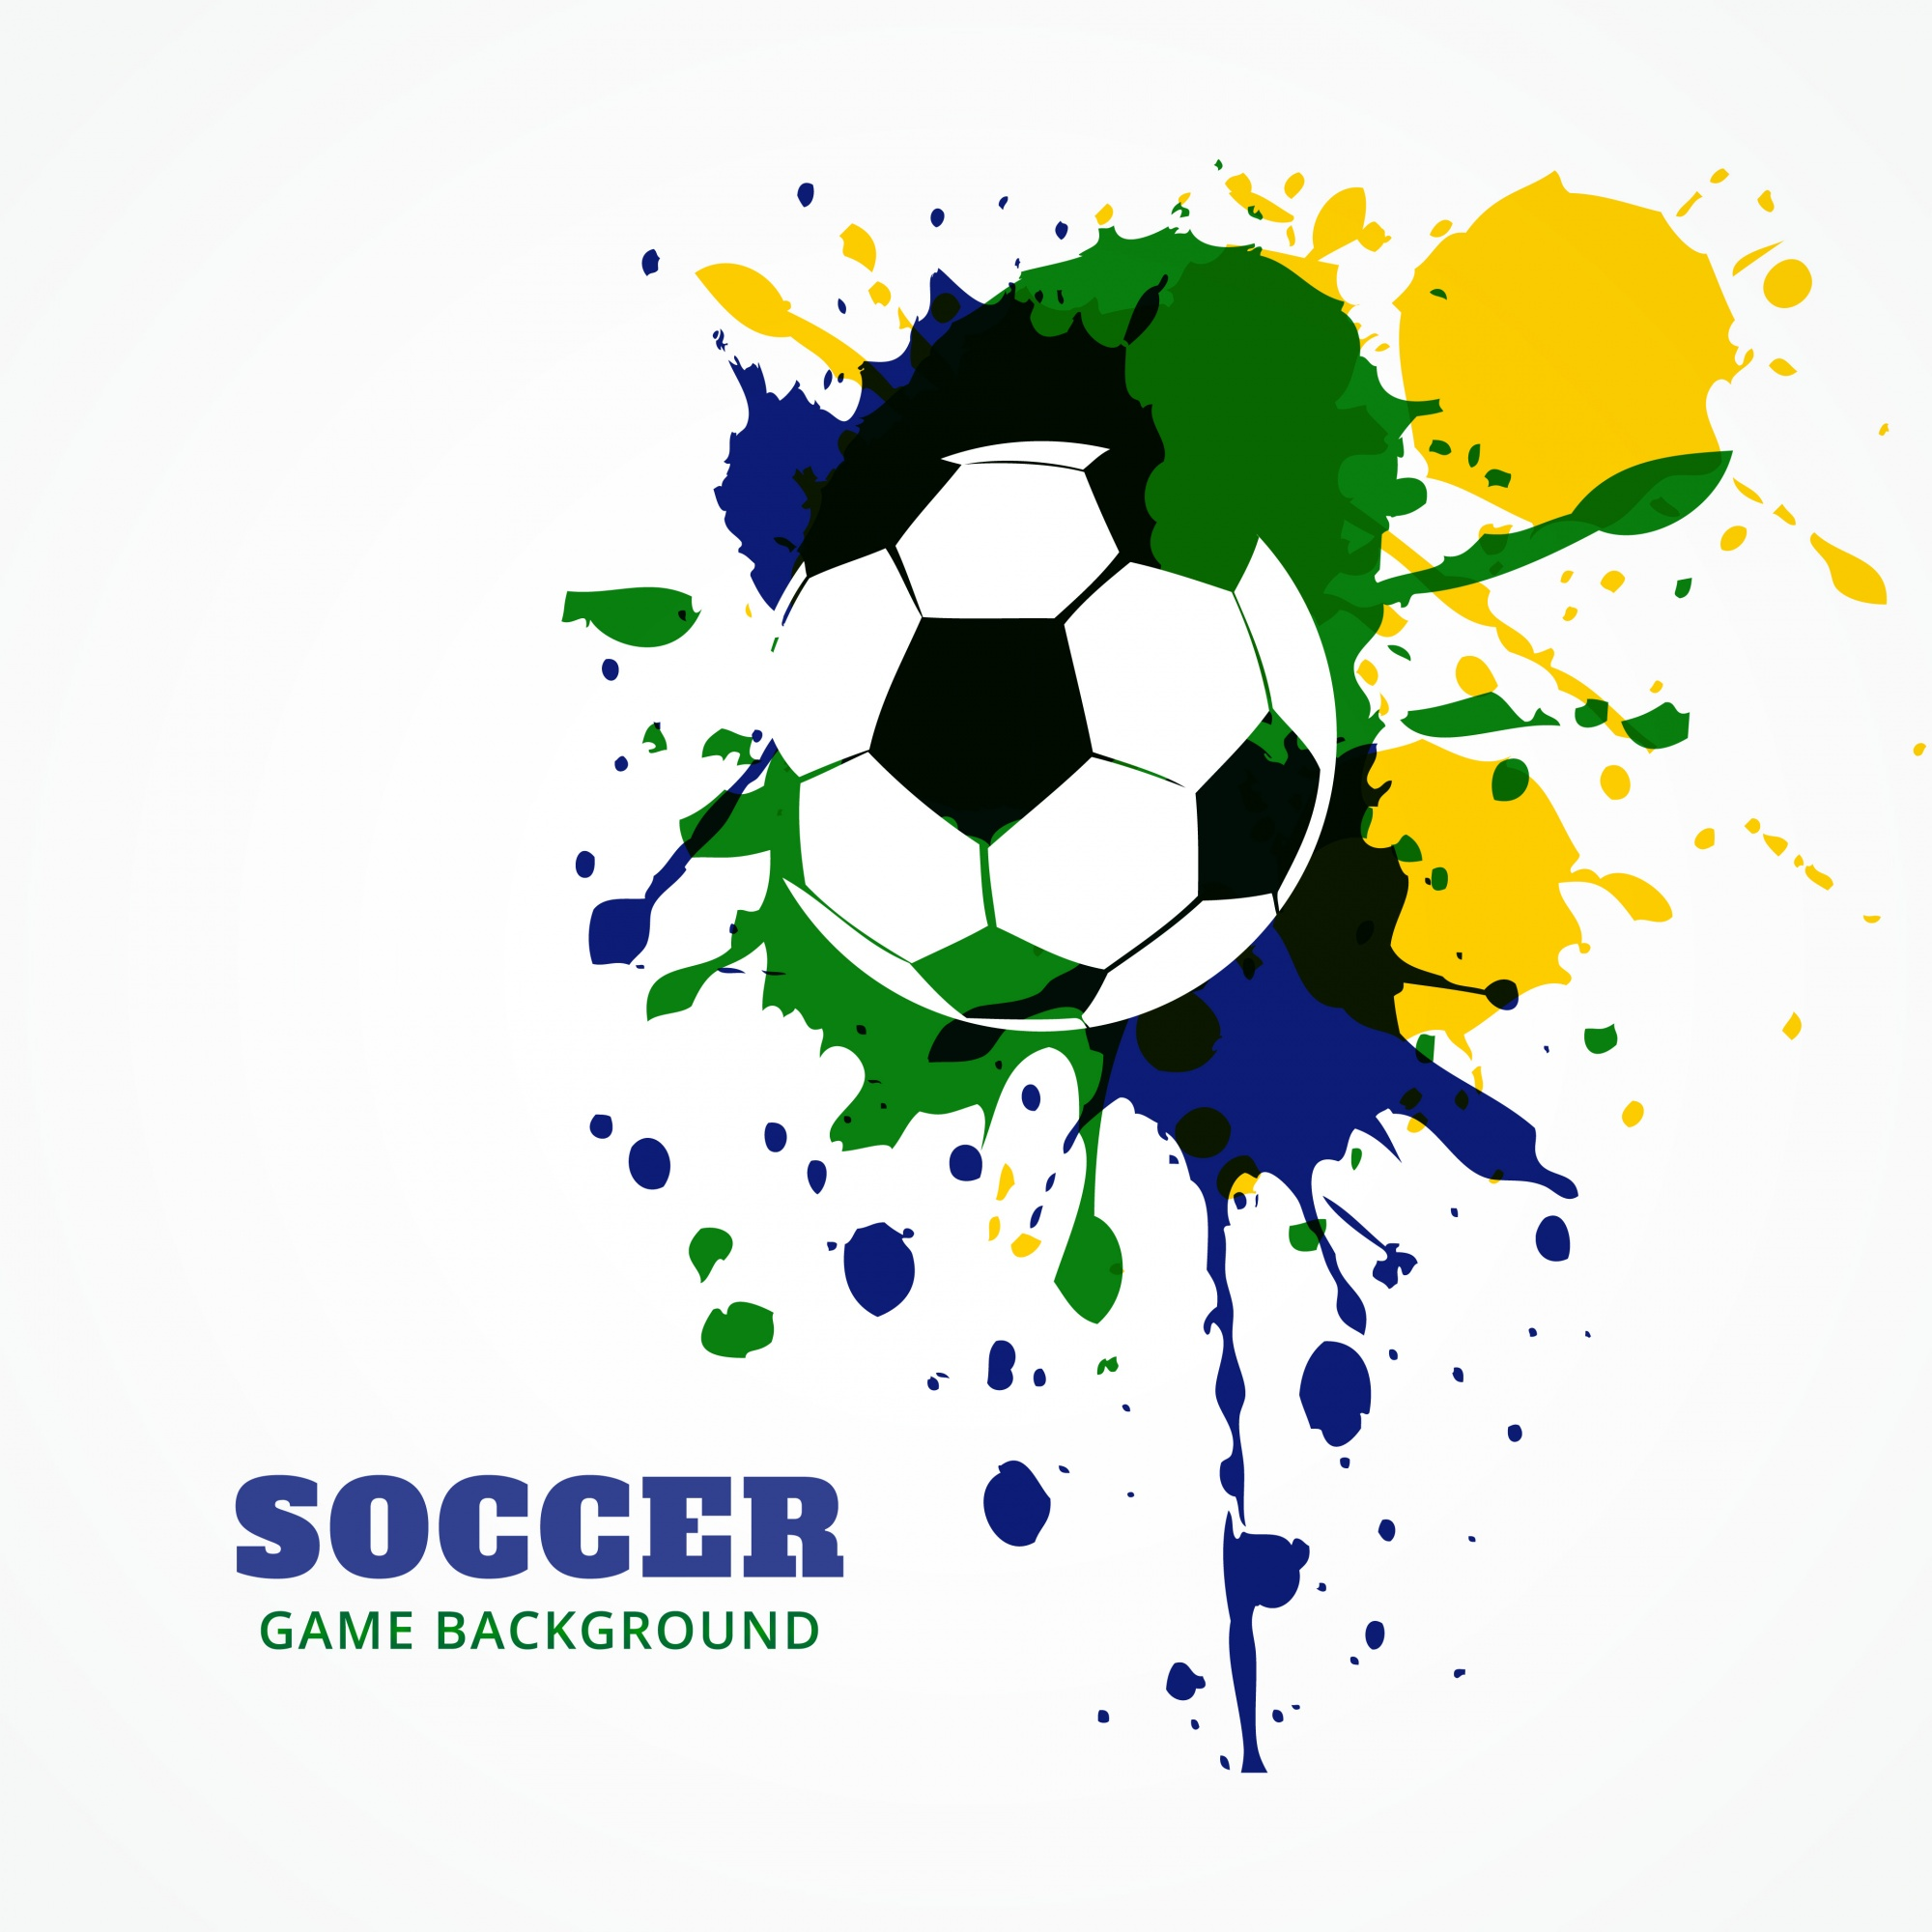 Football design in colors of brazil